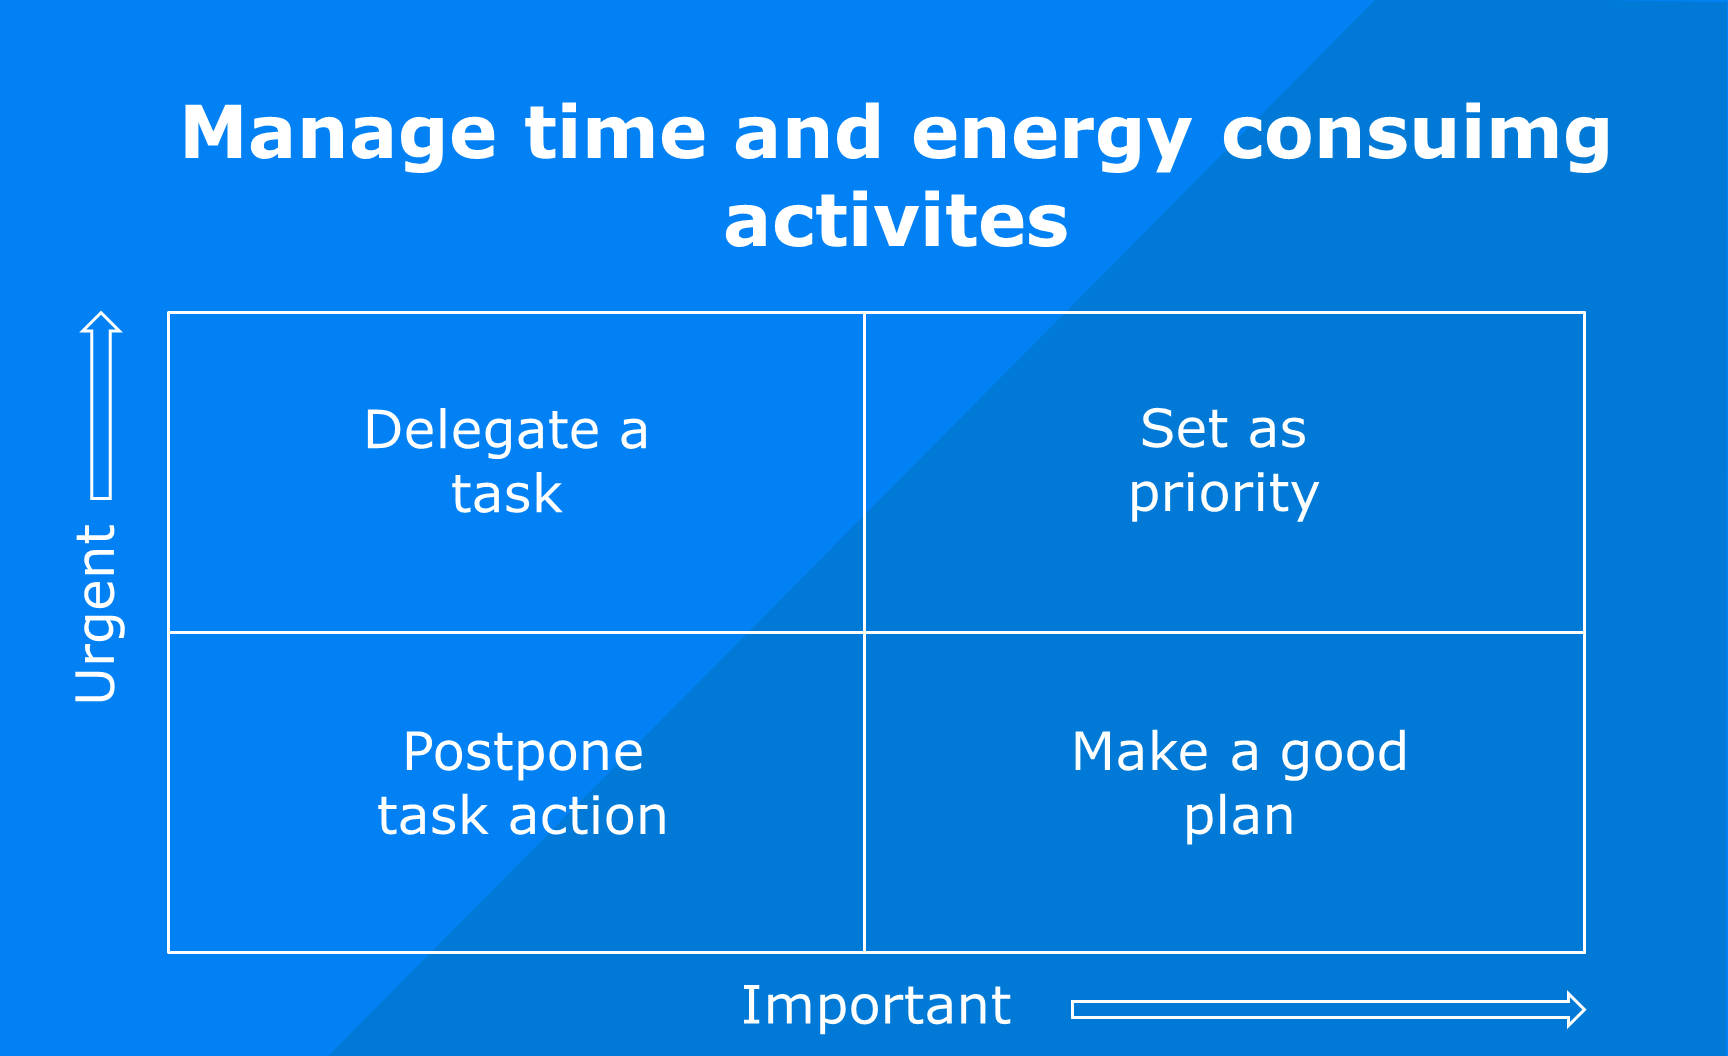 Manage time and energy consuming activities